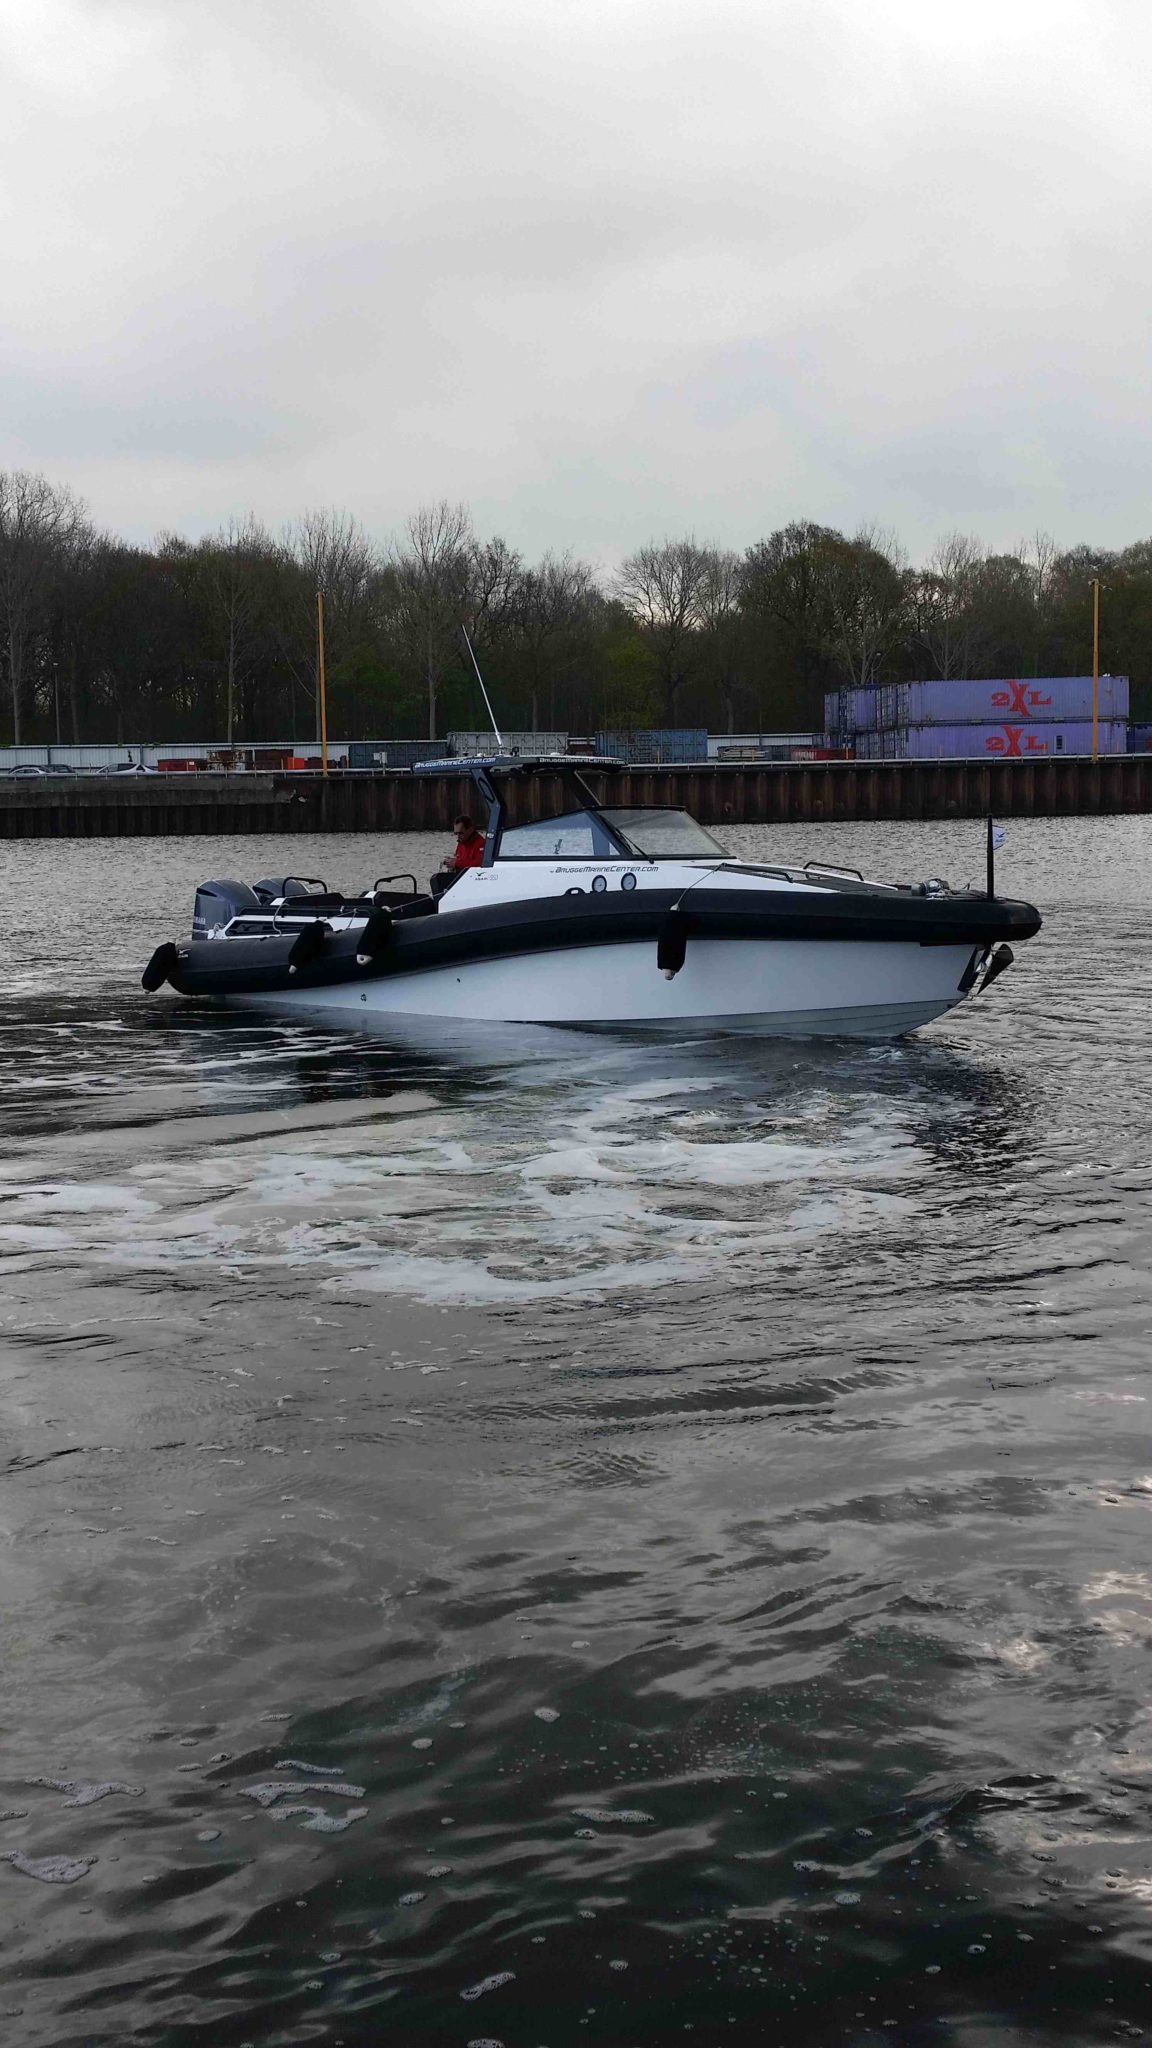 Agapi950-Yamaha300Hp-side right